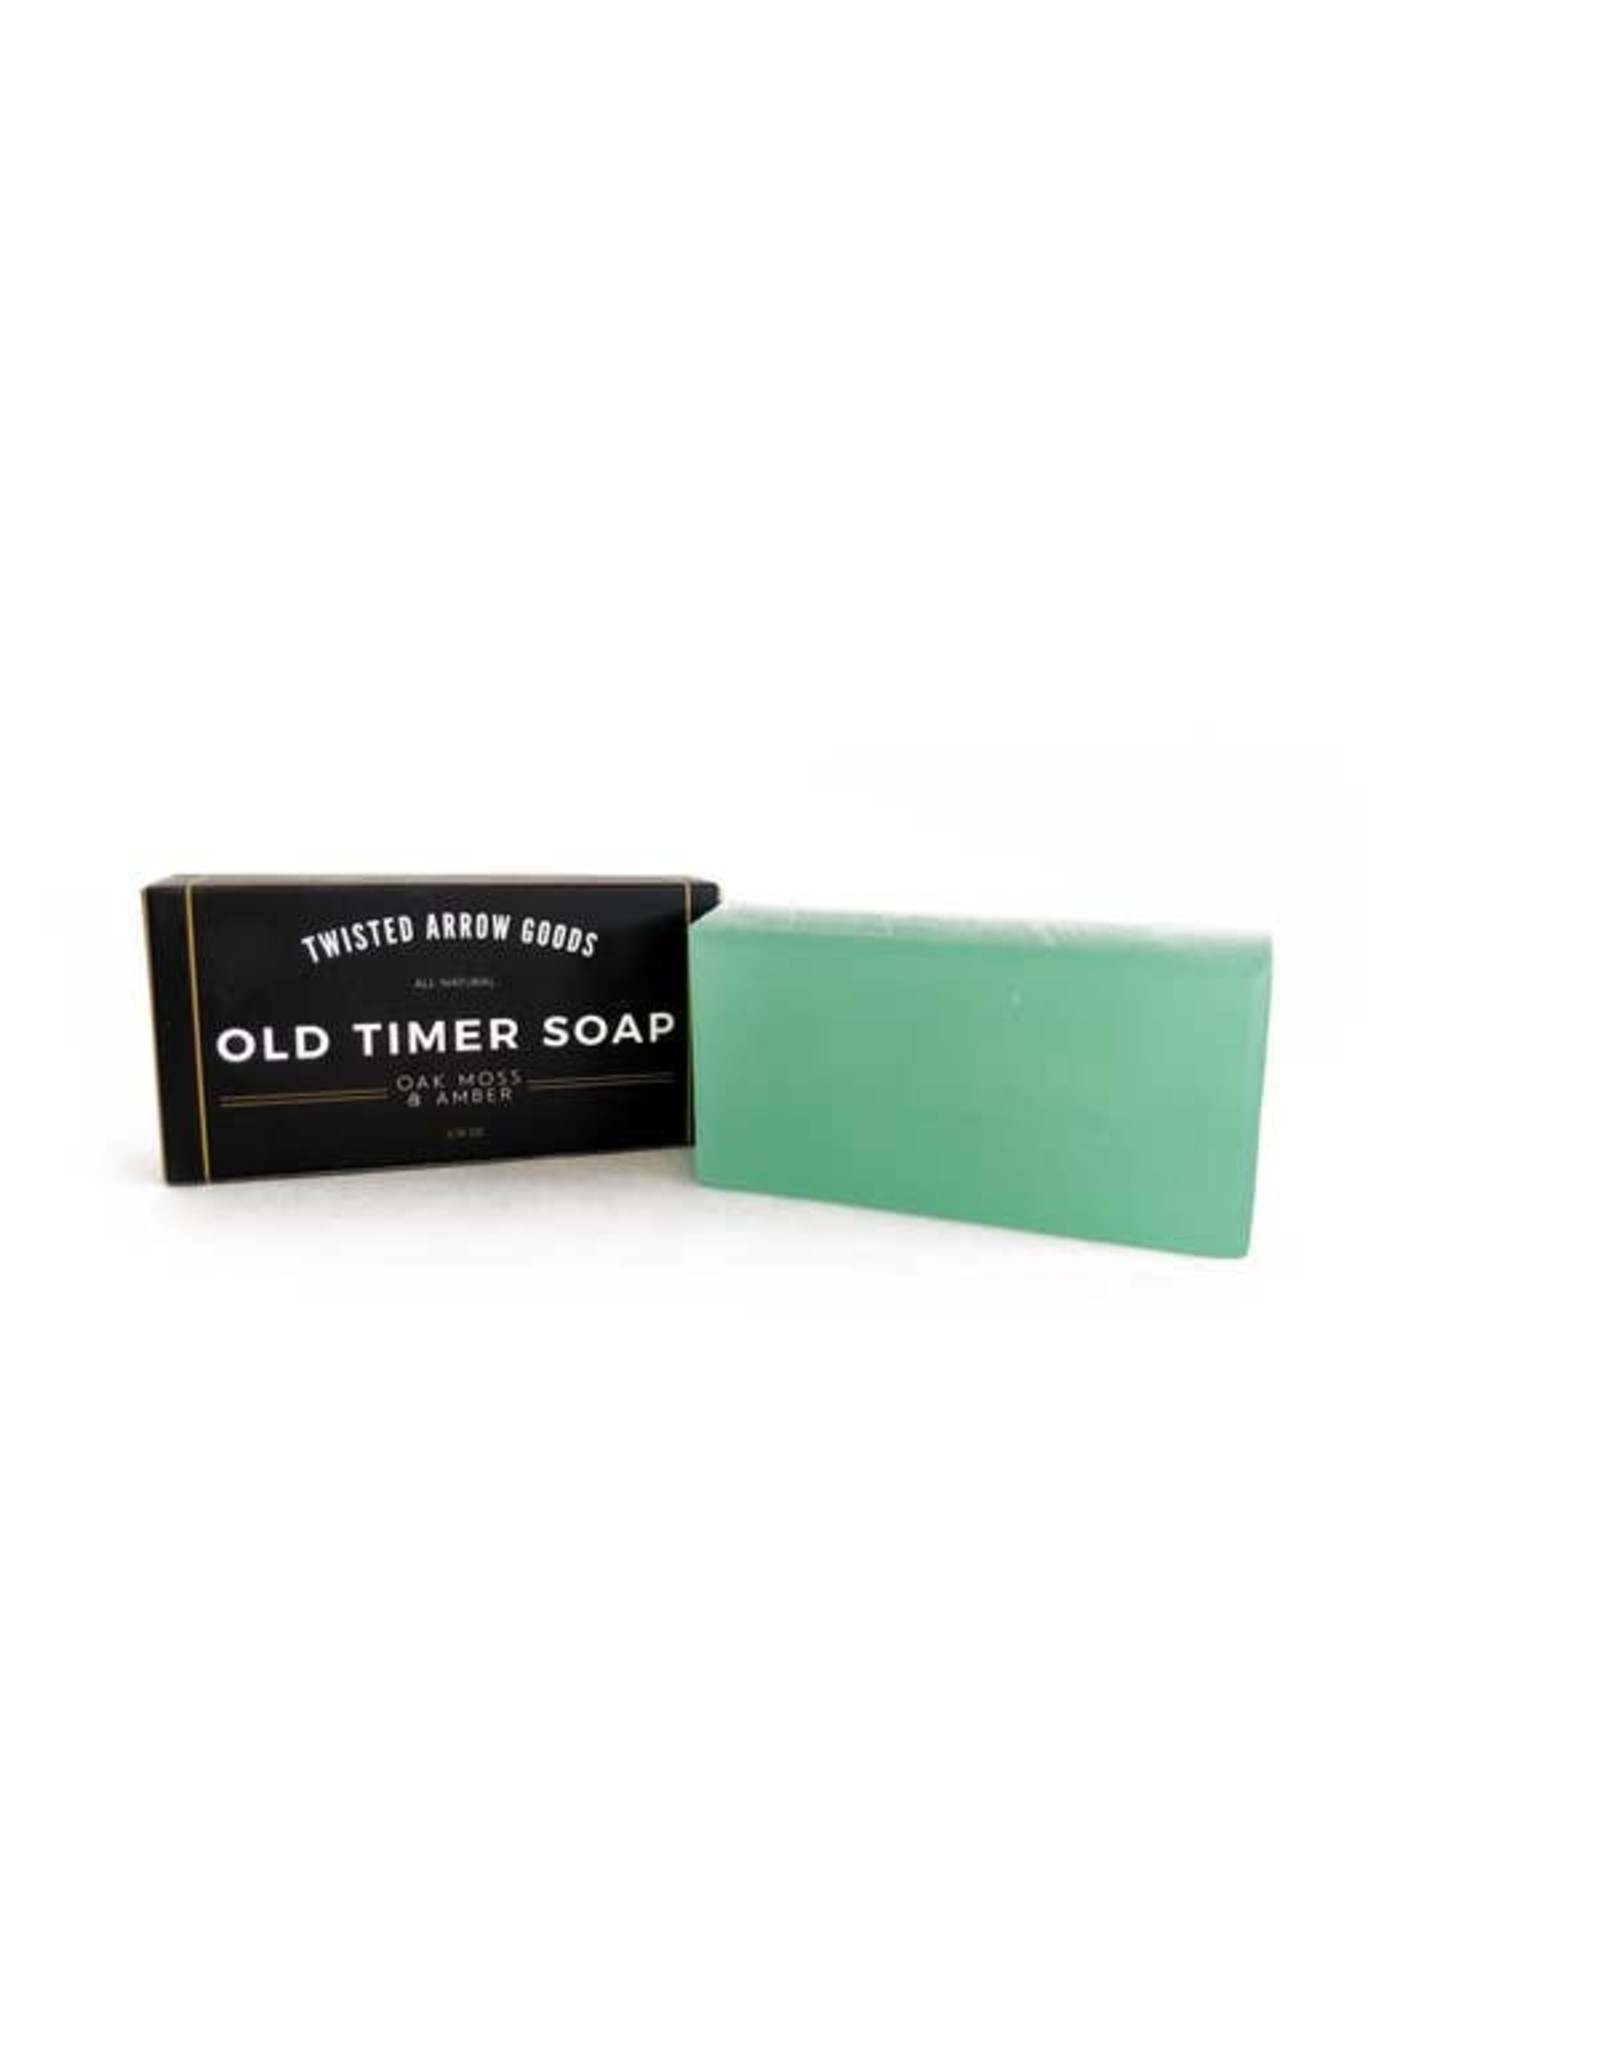 Twisted Arrow Goods Old Timer Soap